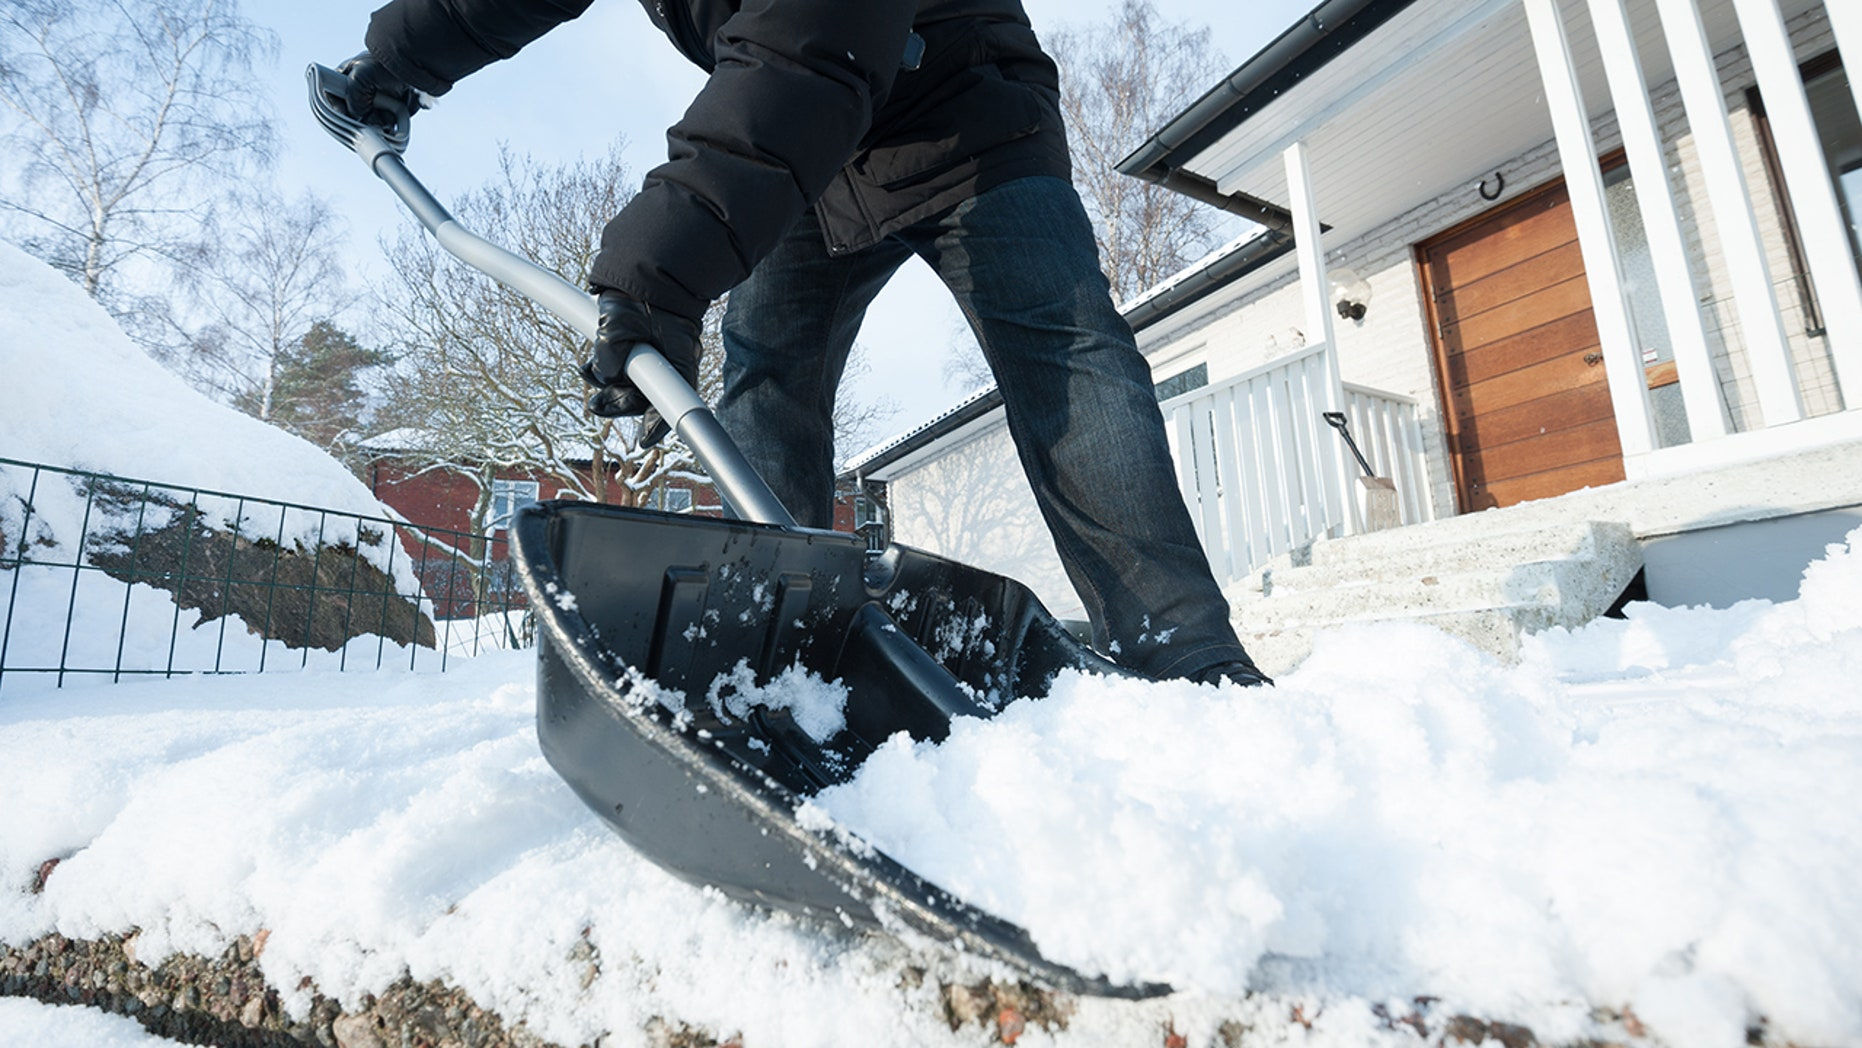 Man removing snow with a snow shovel in front of his house.